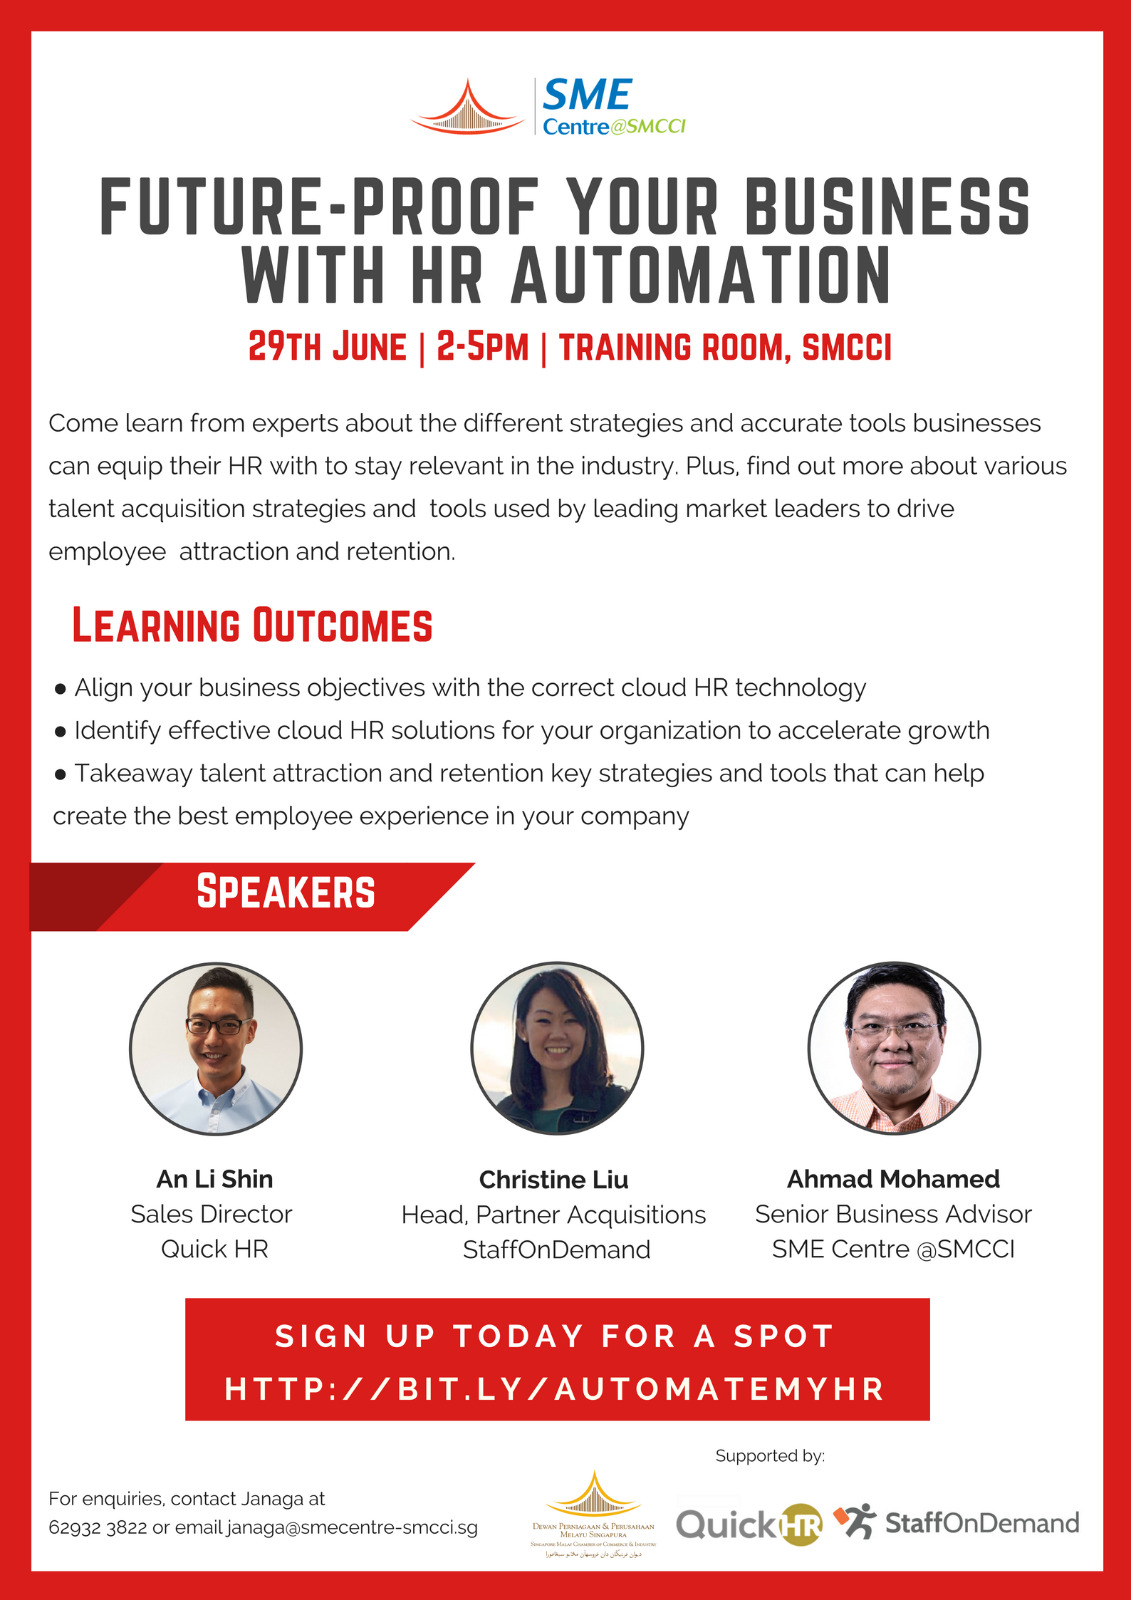 Futureproof Your Business With HR Automation